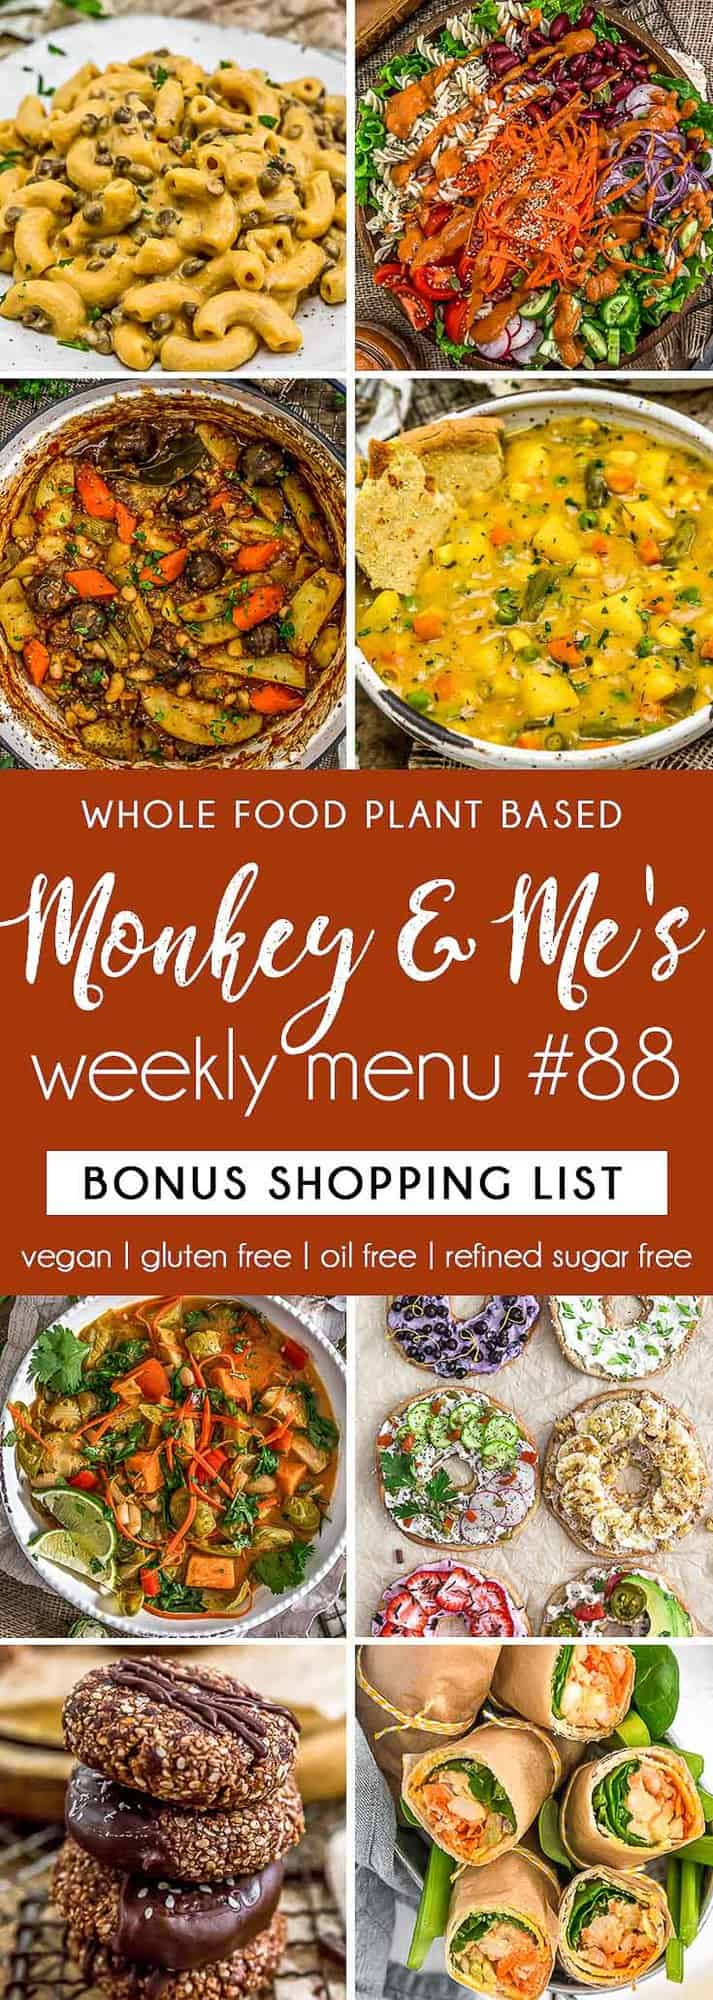 Monkey and Me's Menu 88 featuring 8 recipes